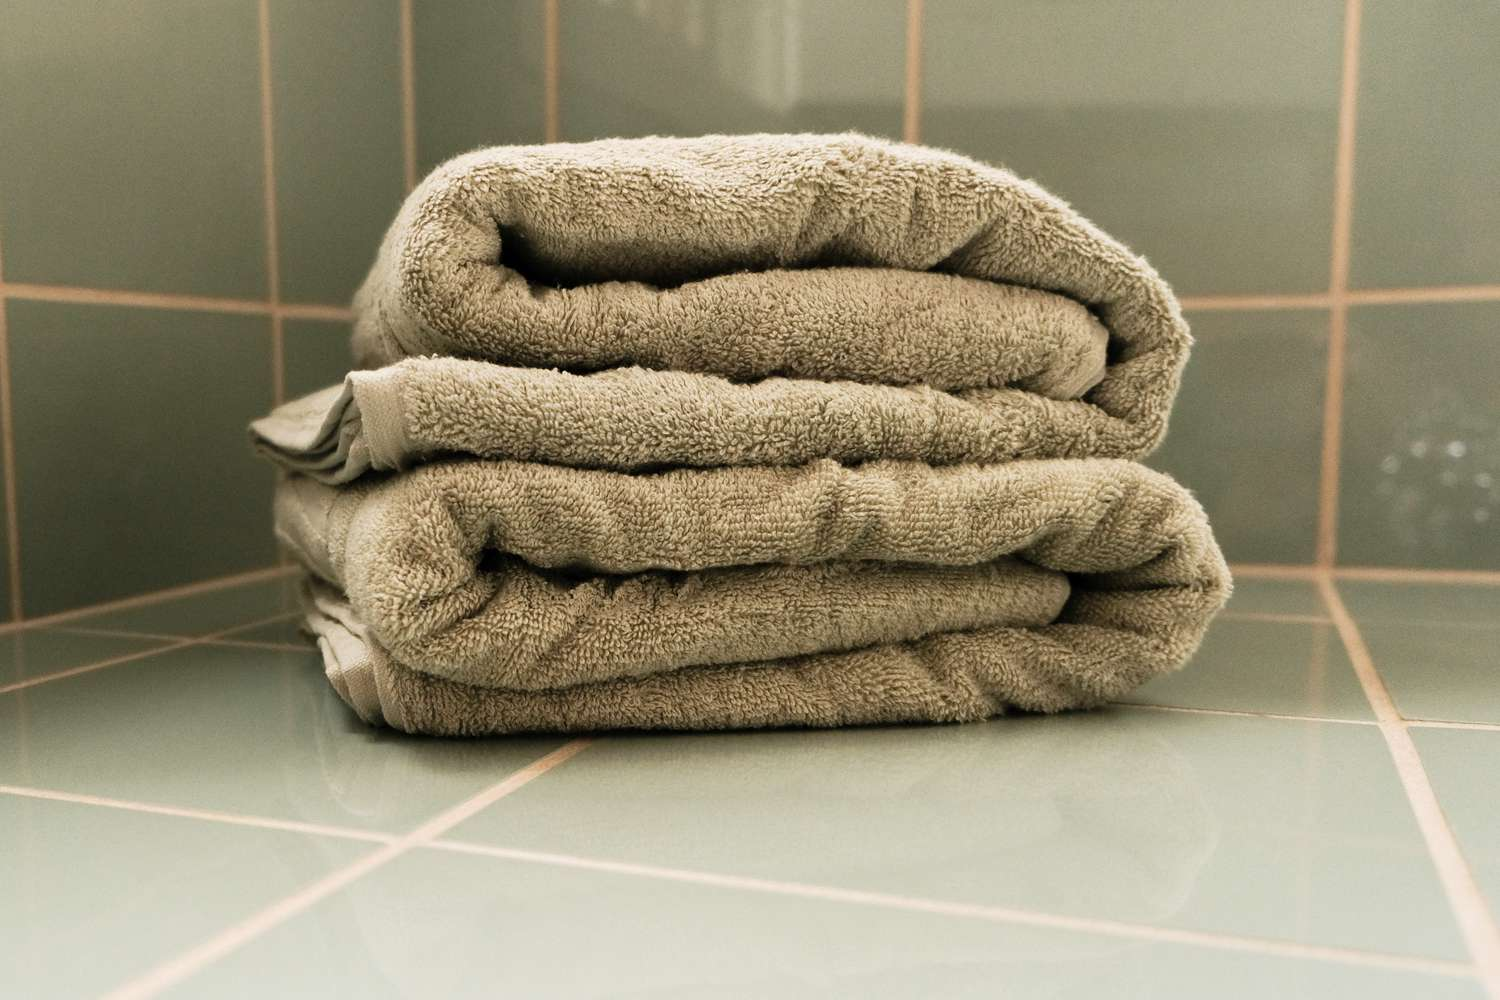 stack of green towels in tiled bathroom